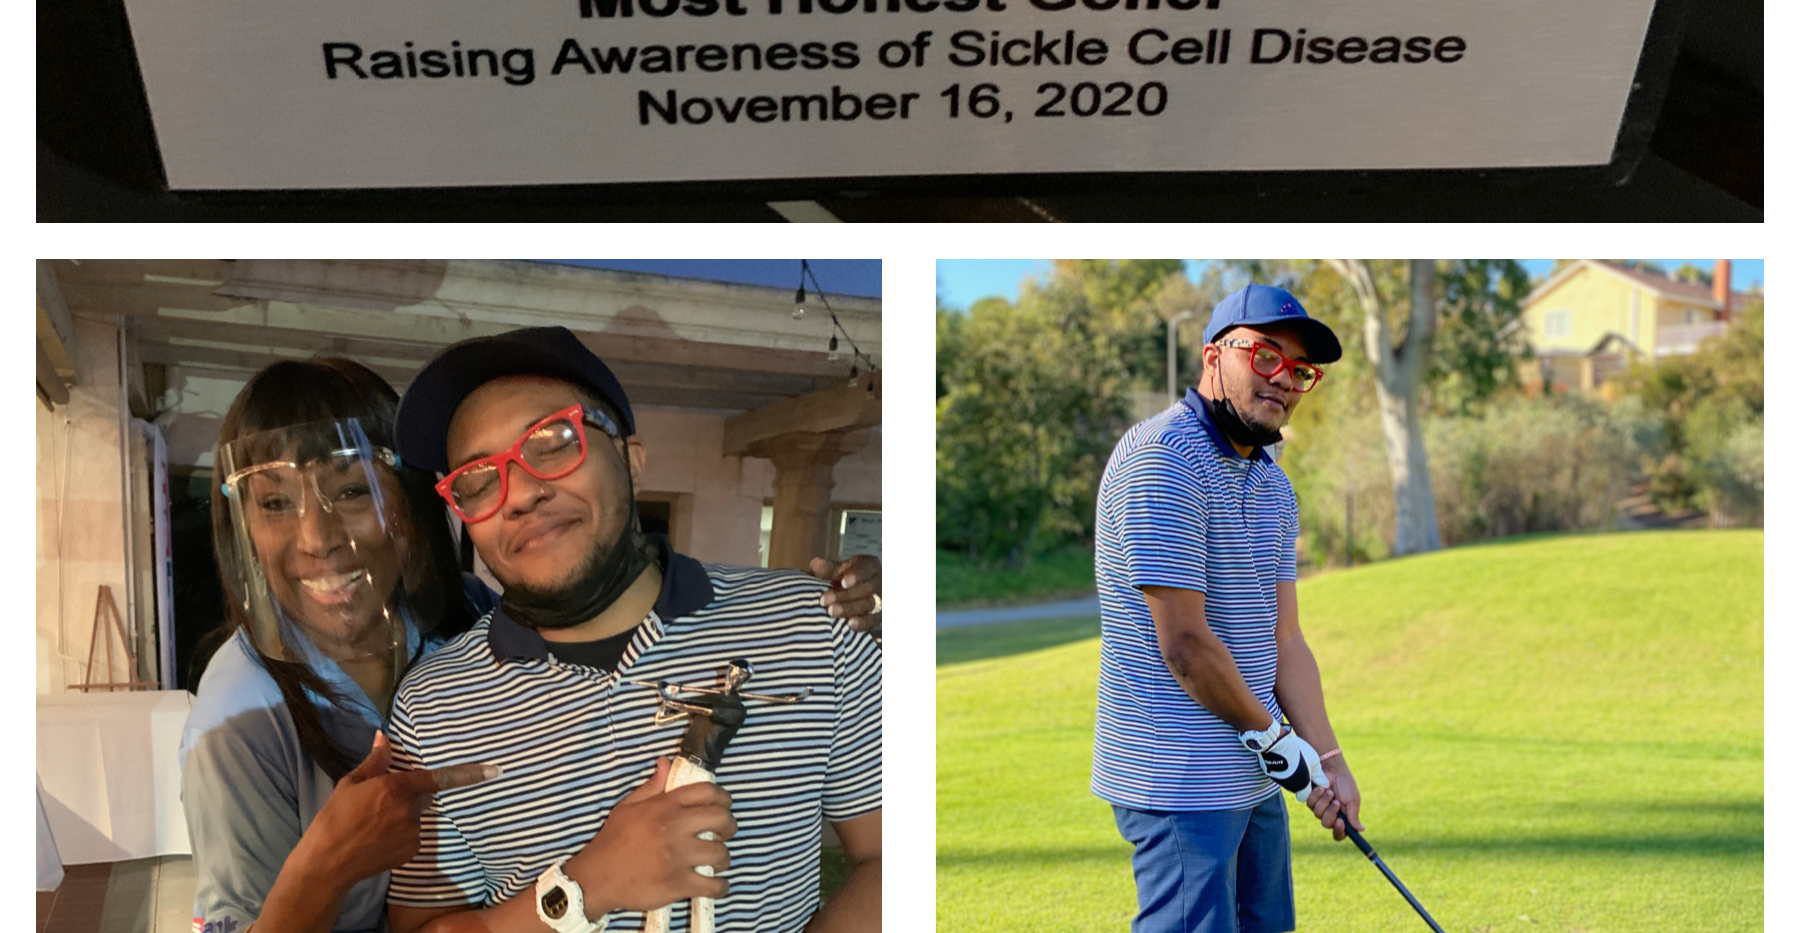 Charon Simmons-Sickle Cell Spokesperson